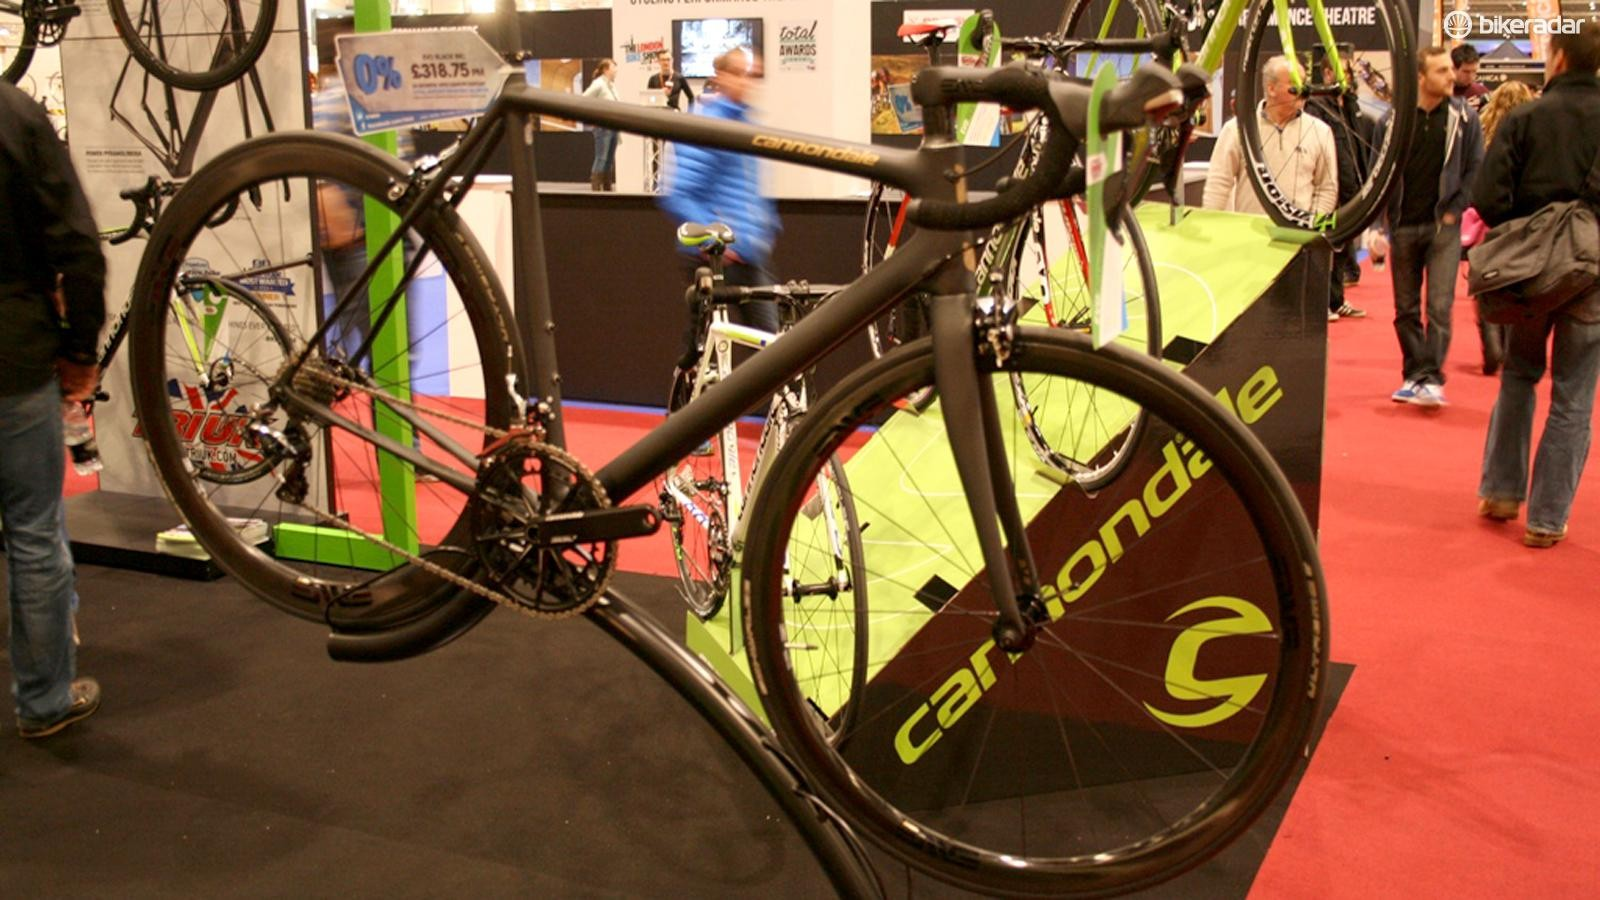 Big brands like Cannondale will be back at the London Bike Show in 2015